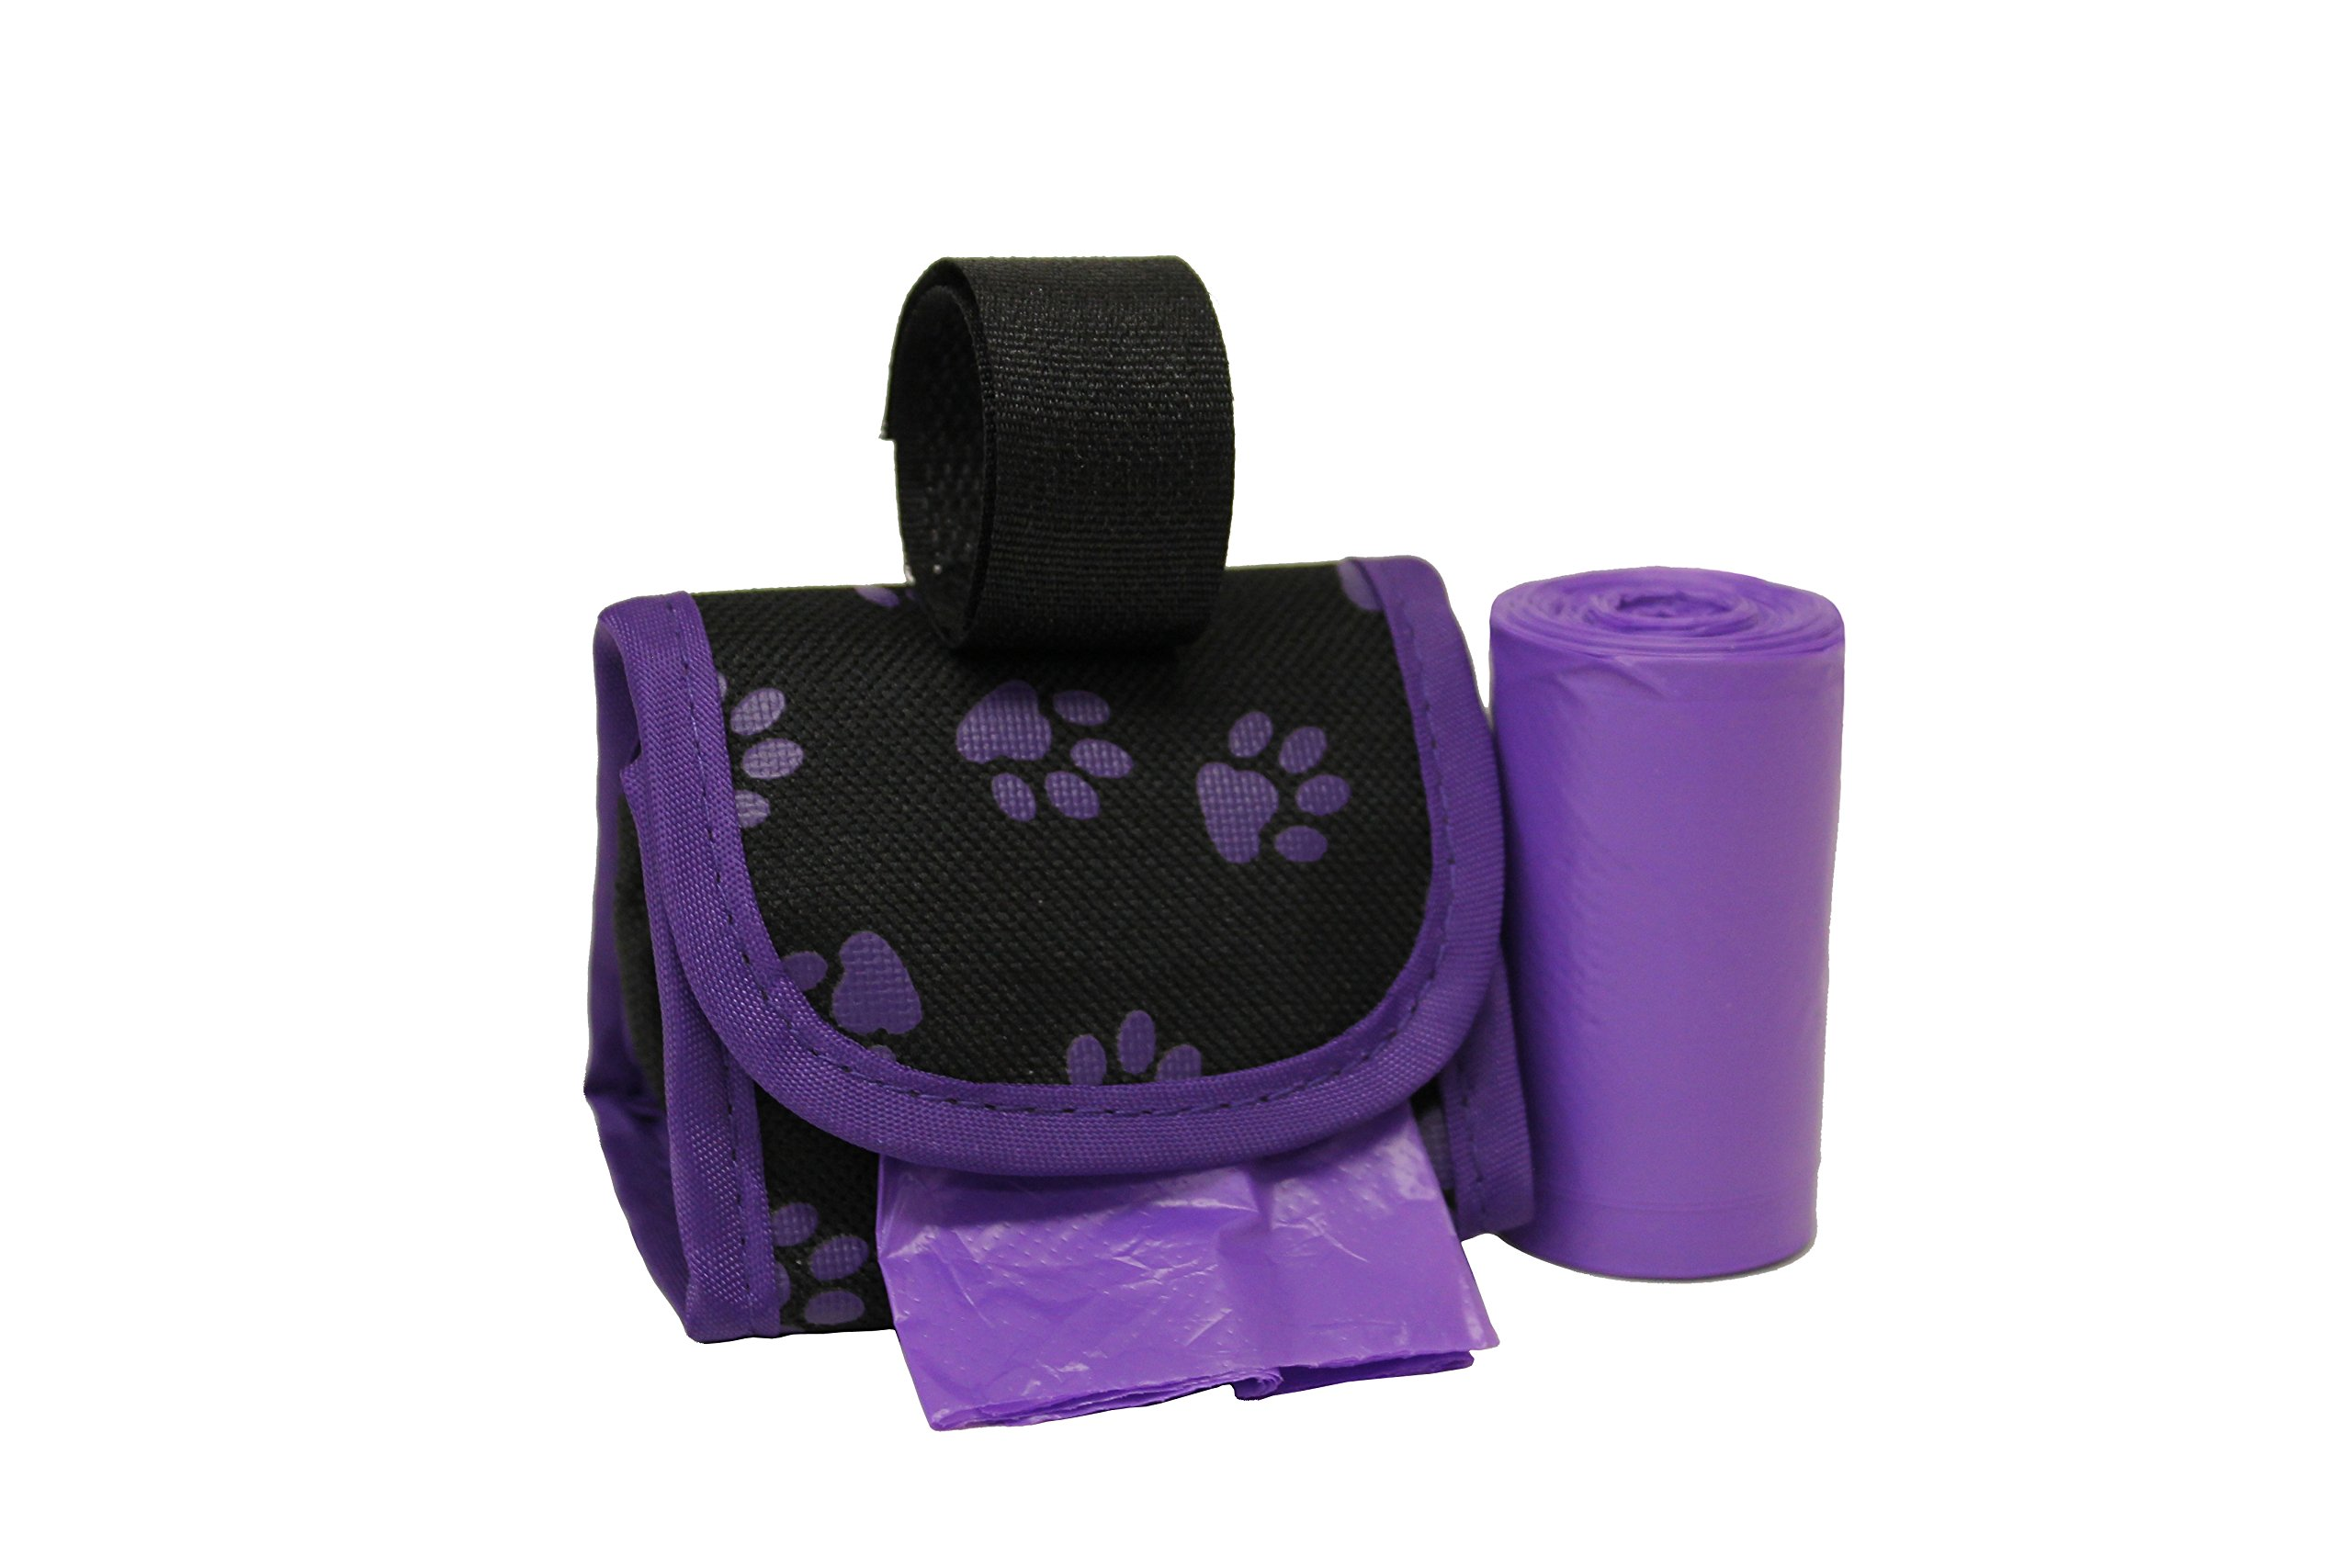 Five Star Pet Purse Waste Bag Dispenser for Pets, Purple with Paws